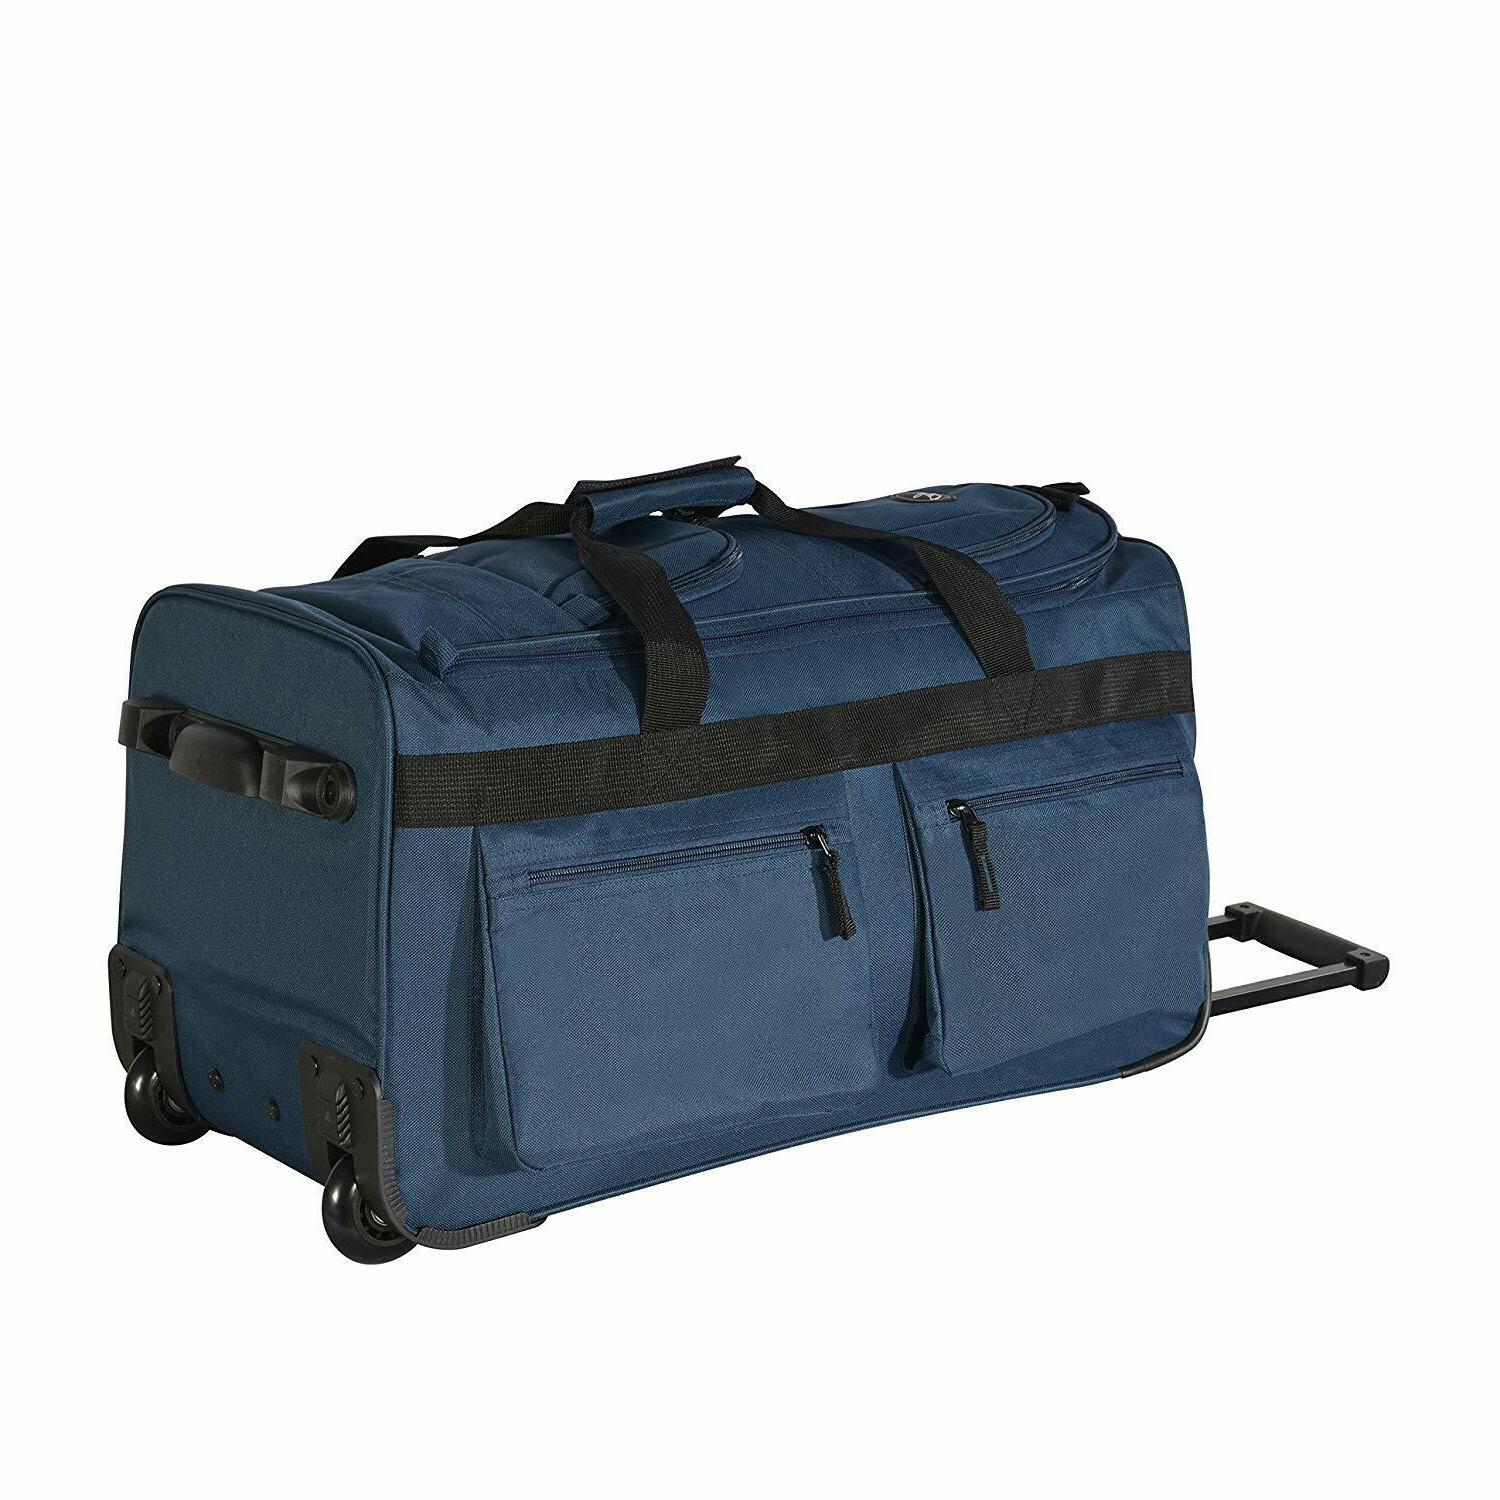 22 Inch Rolling Suitcase Pocket Navy